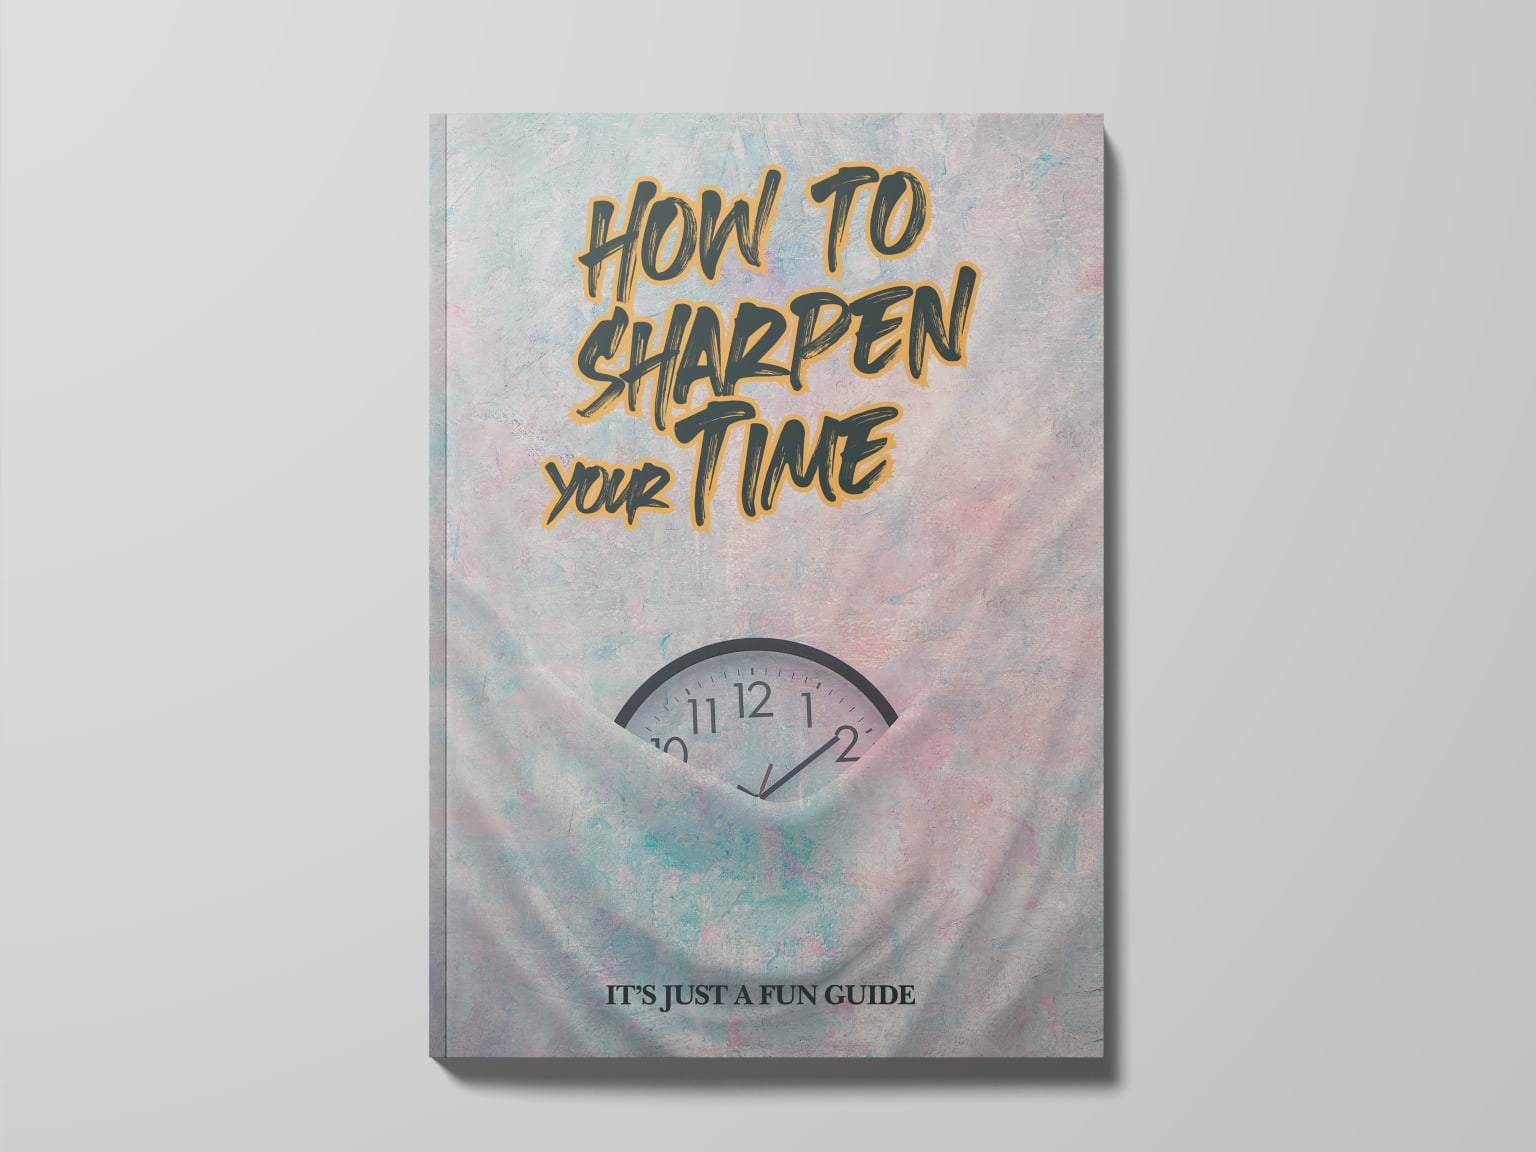 How to Sharpen your time